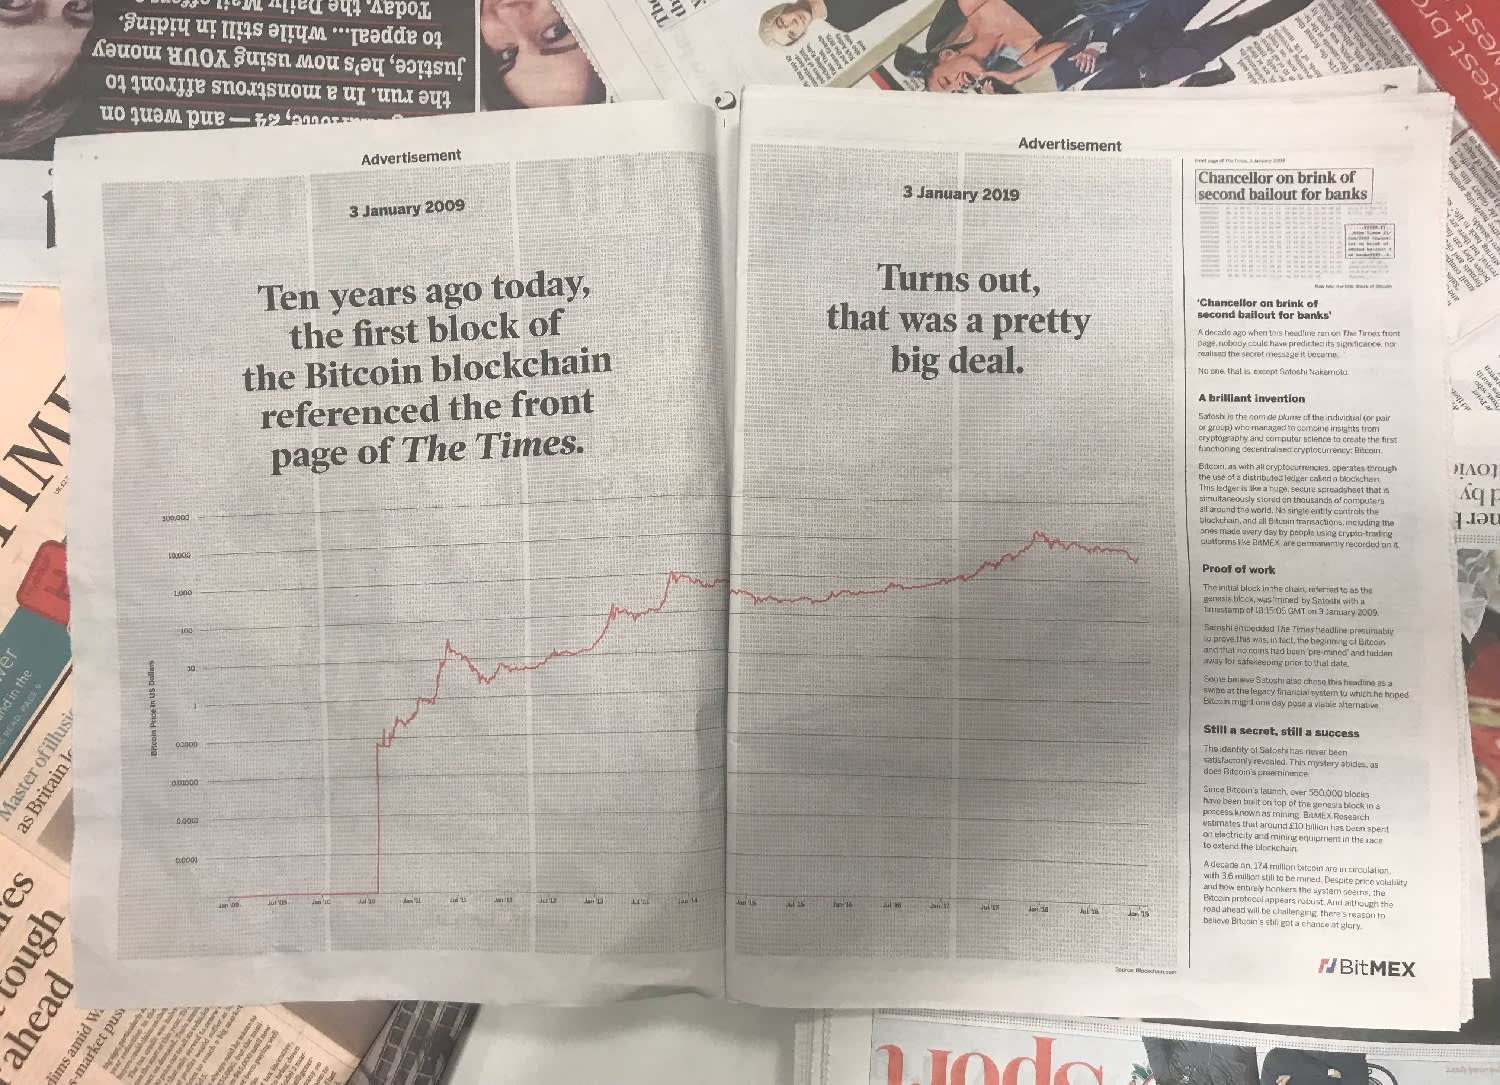 Happy birthday bitcoin  Your gift: a log chart in The Times